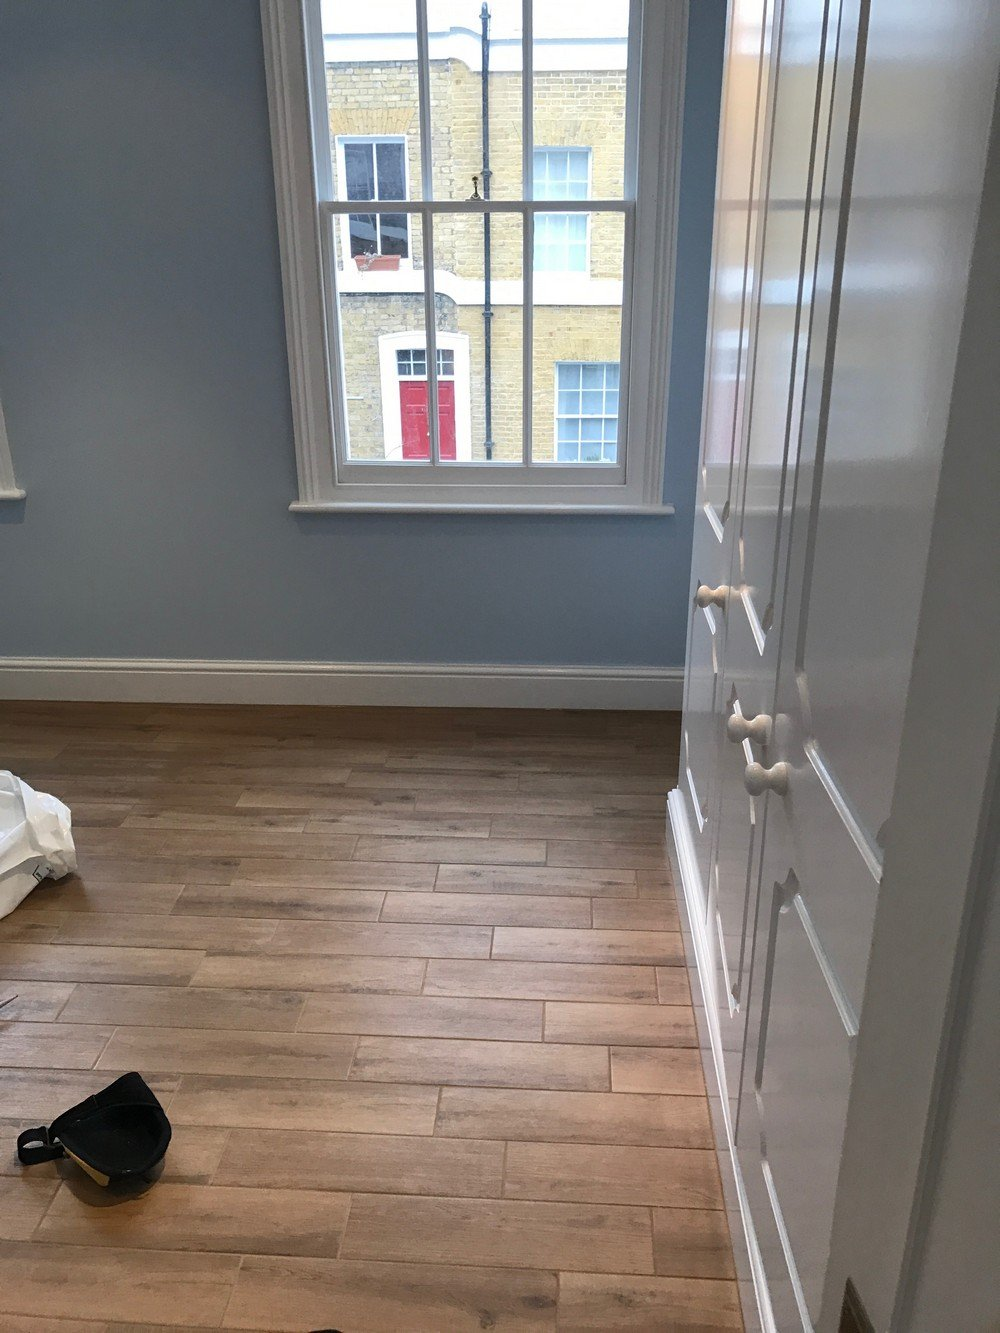 SW1V – Bathrooms, Kitchen, Flooring, Painting Decorating, Steels 7